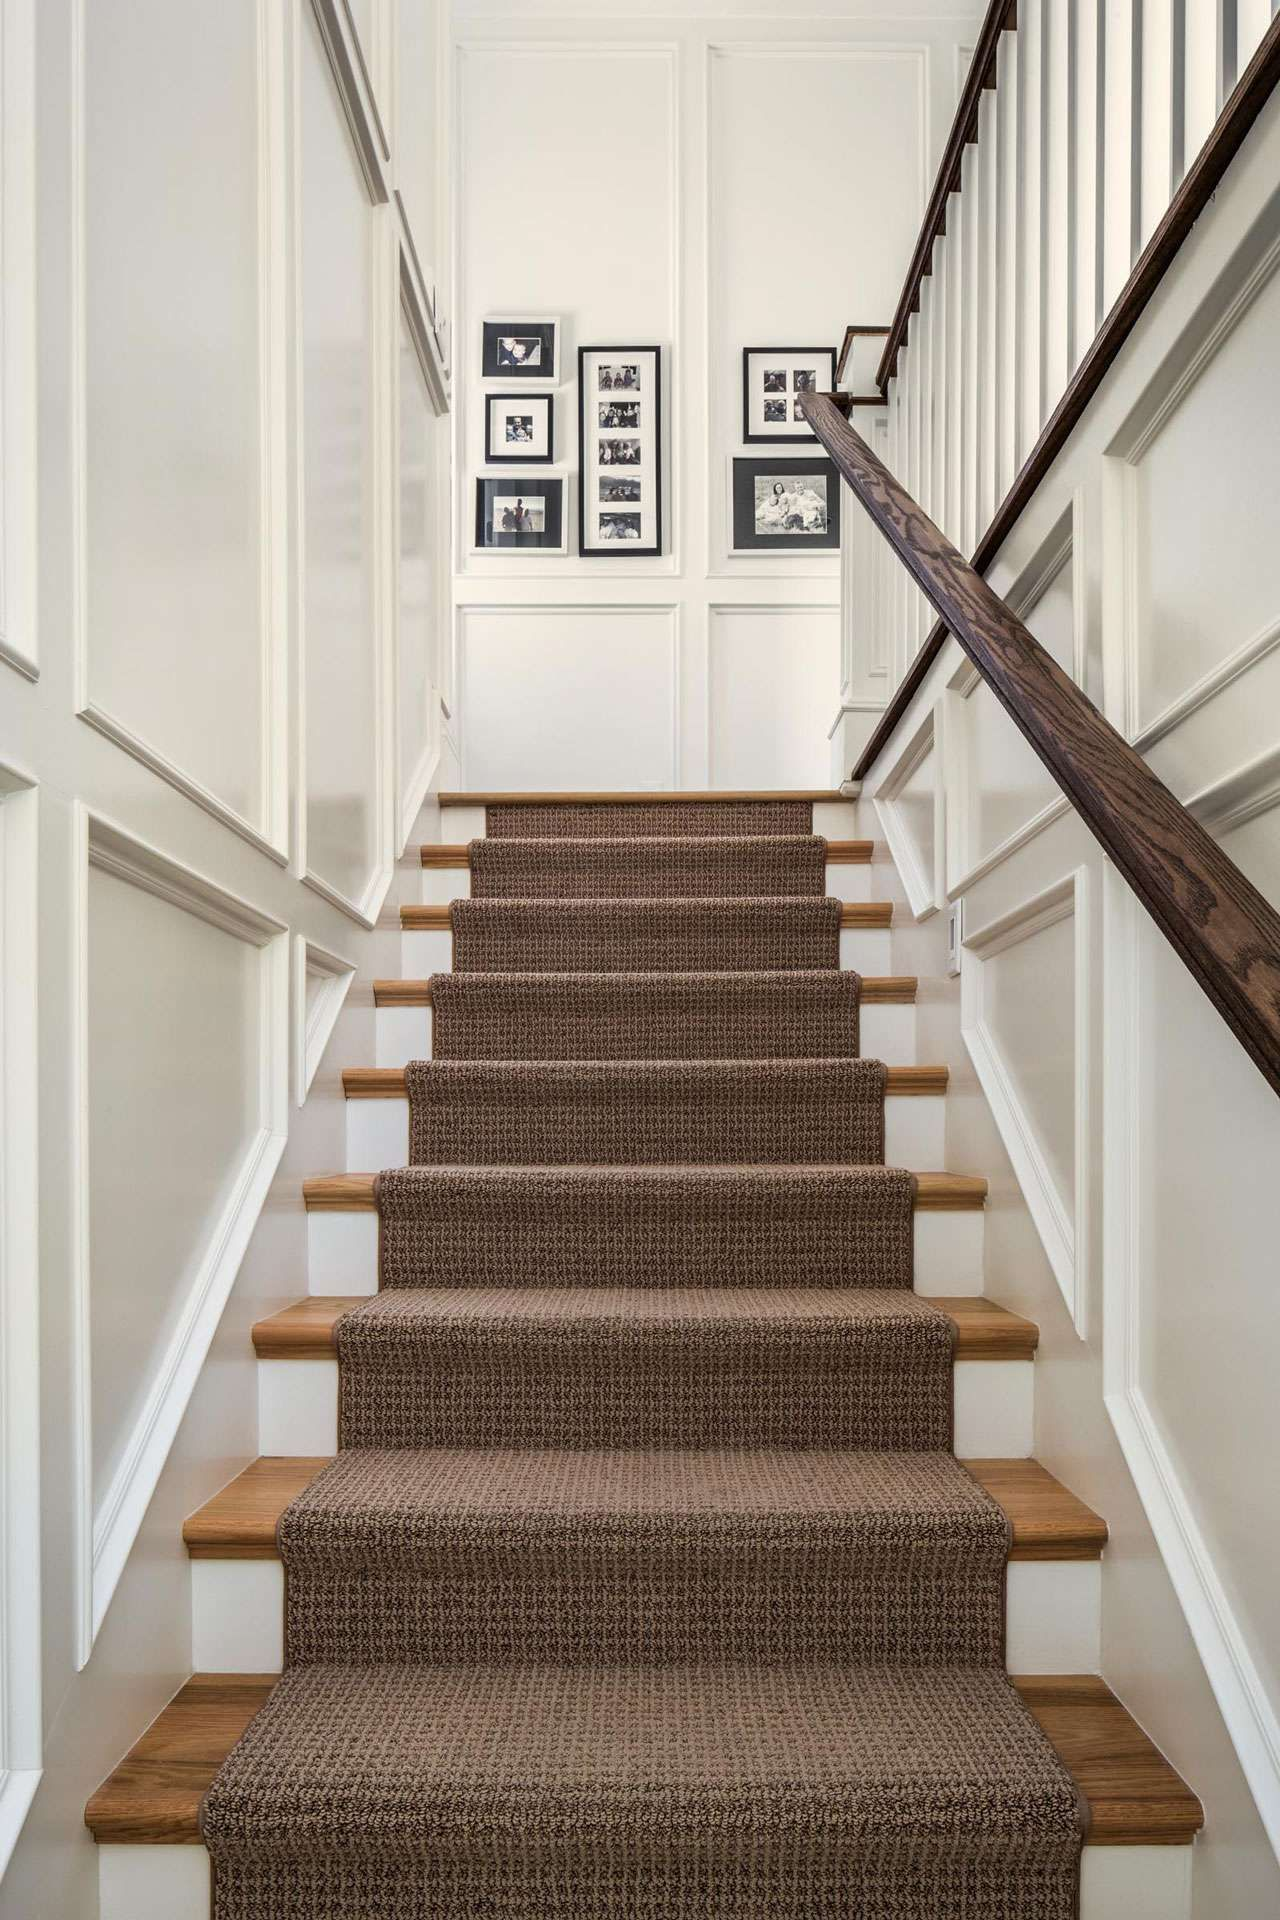 Textured Brown Runner On Wood And White Stairs Flooring For Stairs Stairs Trim Staircase Molding